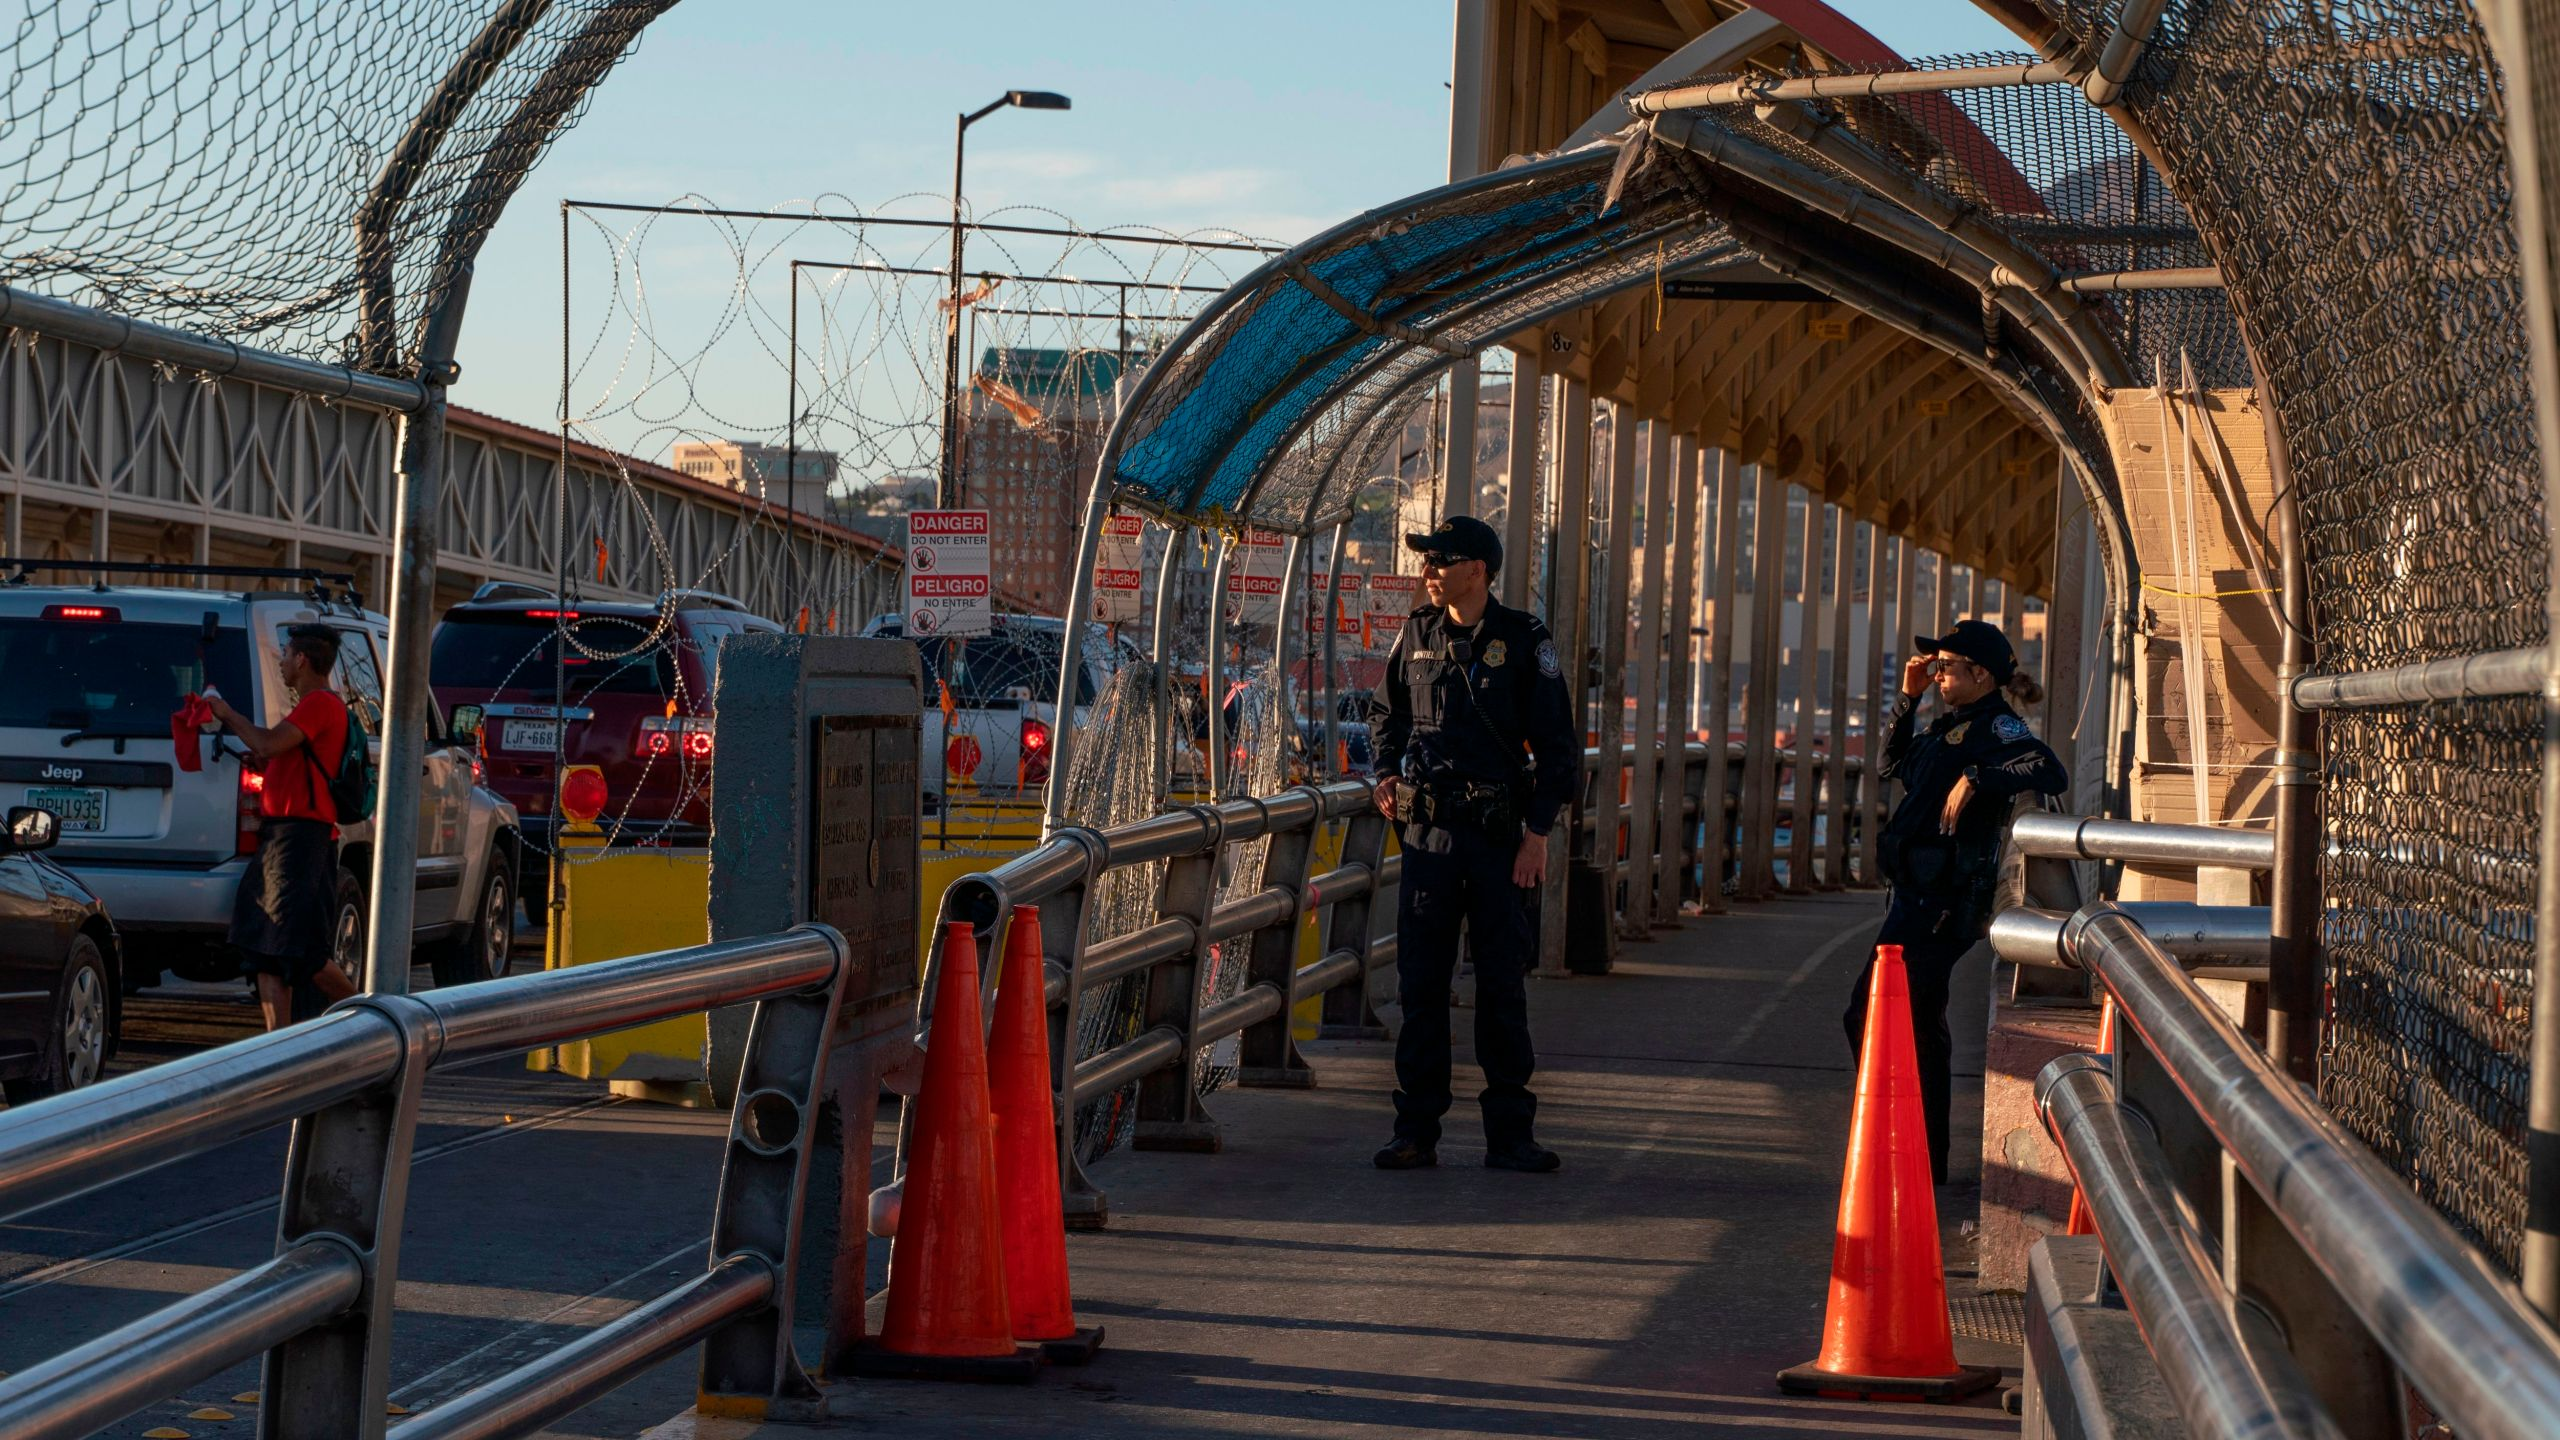 U.S. Customs and Border Protection officers are pictured at the border line where they check permits for crossing Paso Del Norte bridge between downtown El Paso and Ciudad Juarez, Mexico, on April 19, 2019. (Credit: PAUL RATJE/AFP/Getty Images)